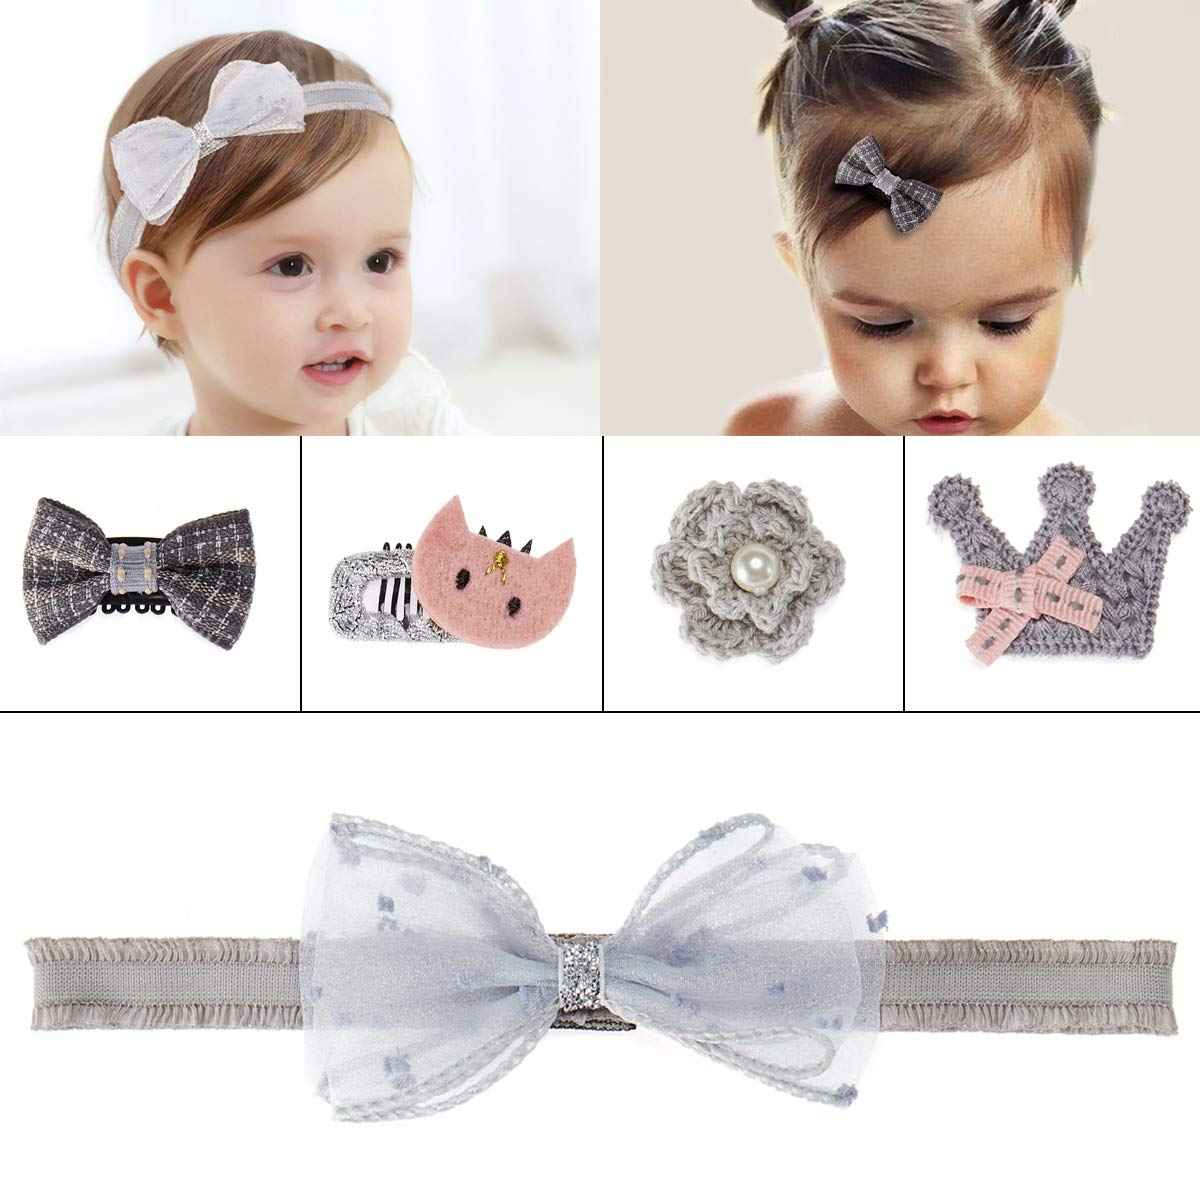 SOMIER 5pcs Baby Bowknot Hairband Set Flower Hair Clips Set Princess Crown Hair Barrettes for Little Girls Kids Toddlers Hair Accessories